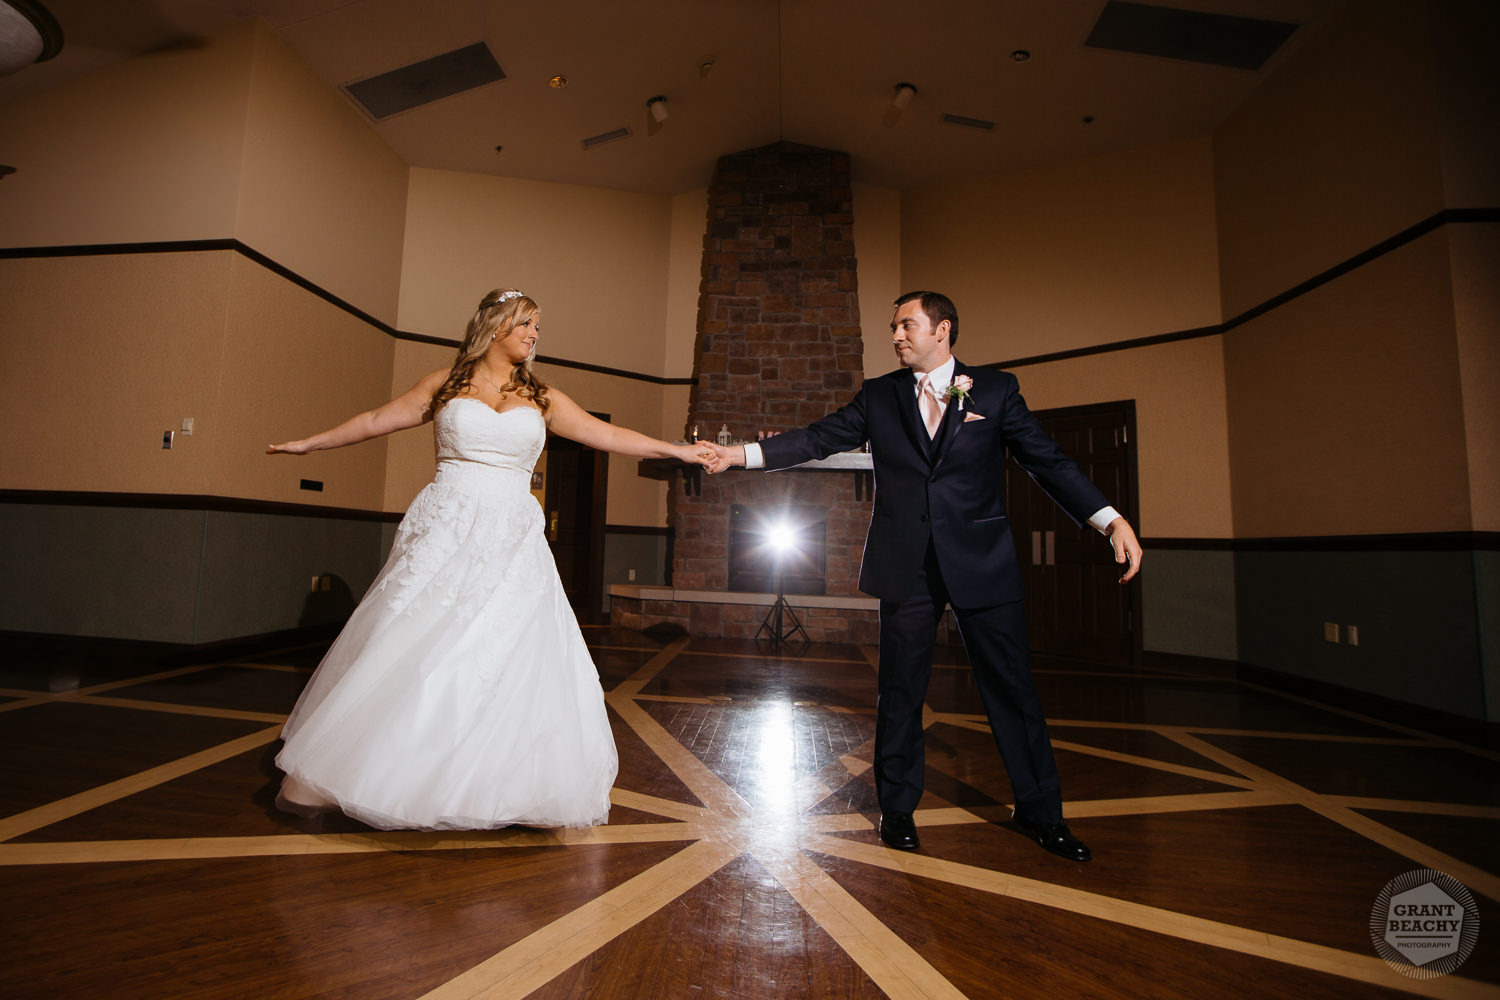 Grant Beachy wedding photography southbend goshen chicago-42.jpg